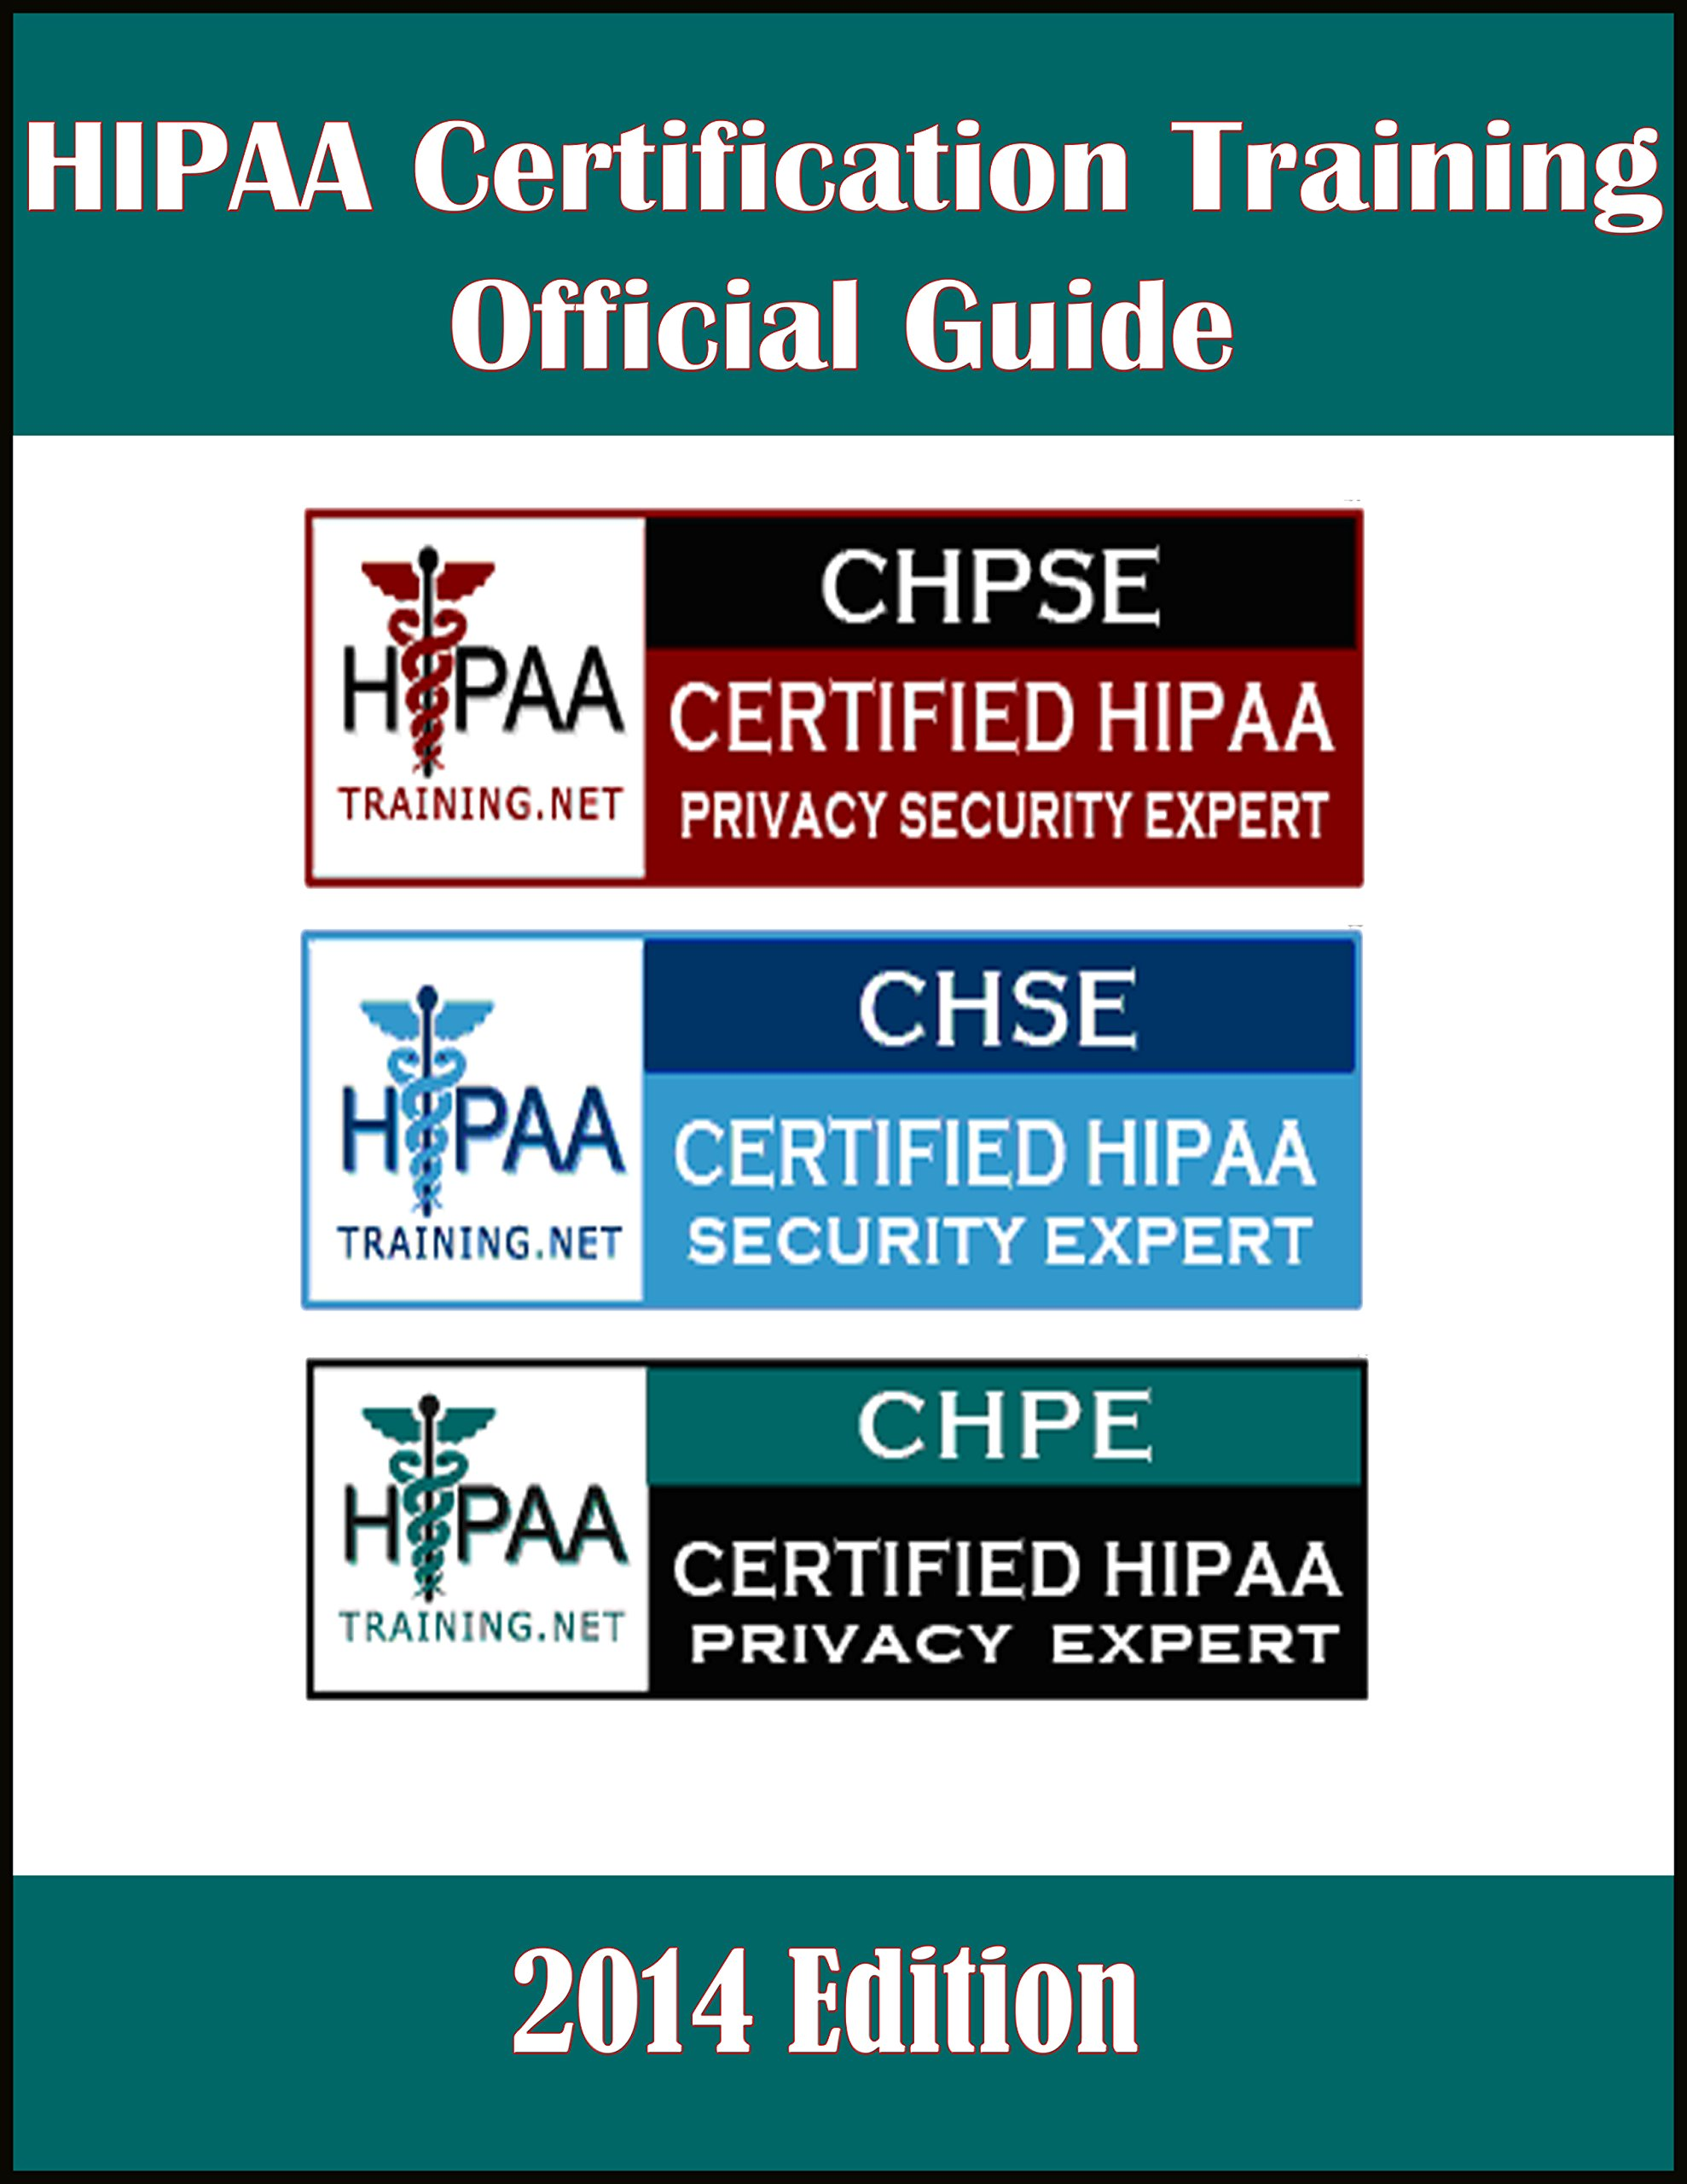 Hipaa Certification Training Official Guide Chpse Chse Chpe